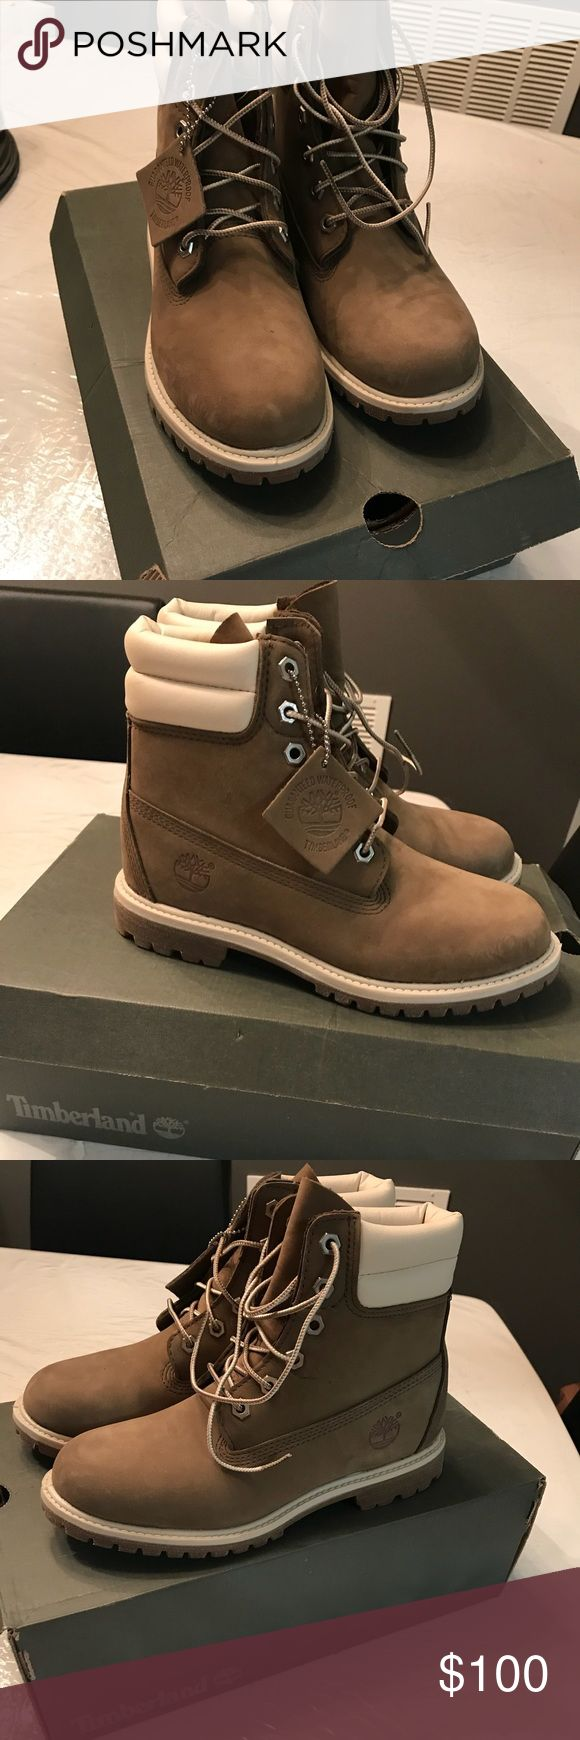 BRAND NEW OLIVE GREEN TIMBERLAND BOOTS (WOMENS) These shoes are a size 7! These Timberlands are BRAND NEW and never worn and comes with the original box! The color is olive green! Timberland Shoes Combat & Moto Boots